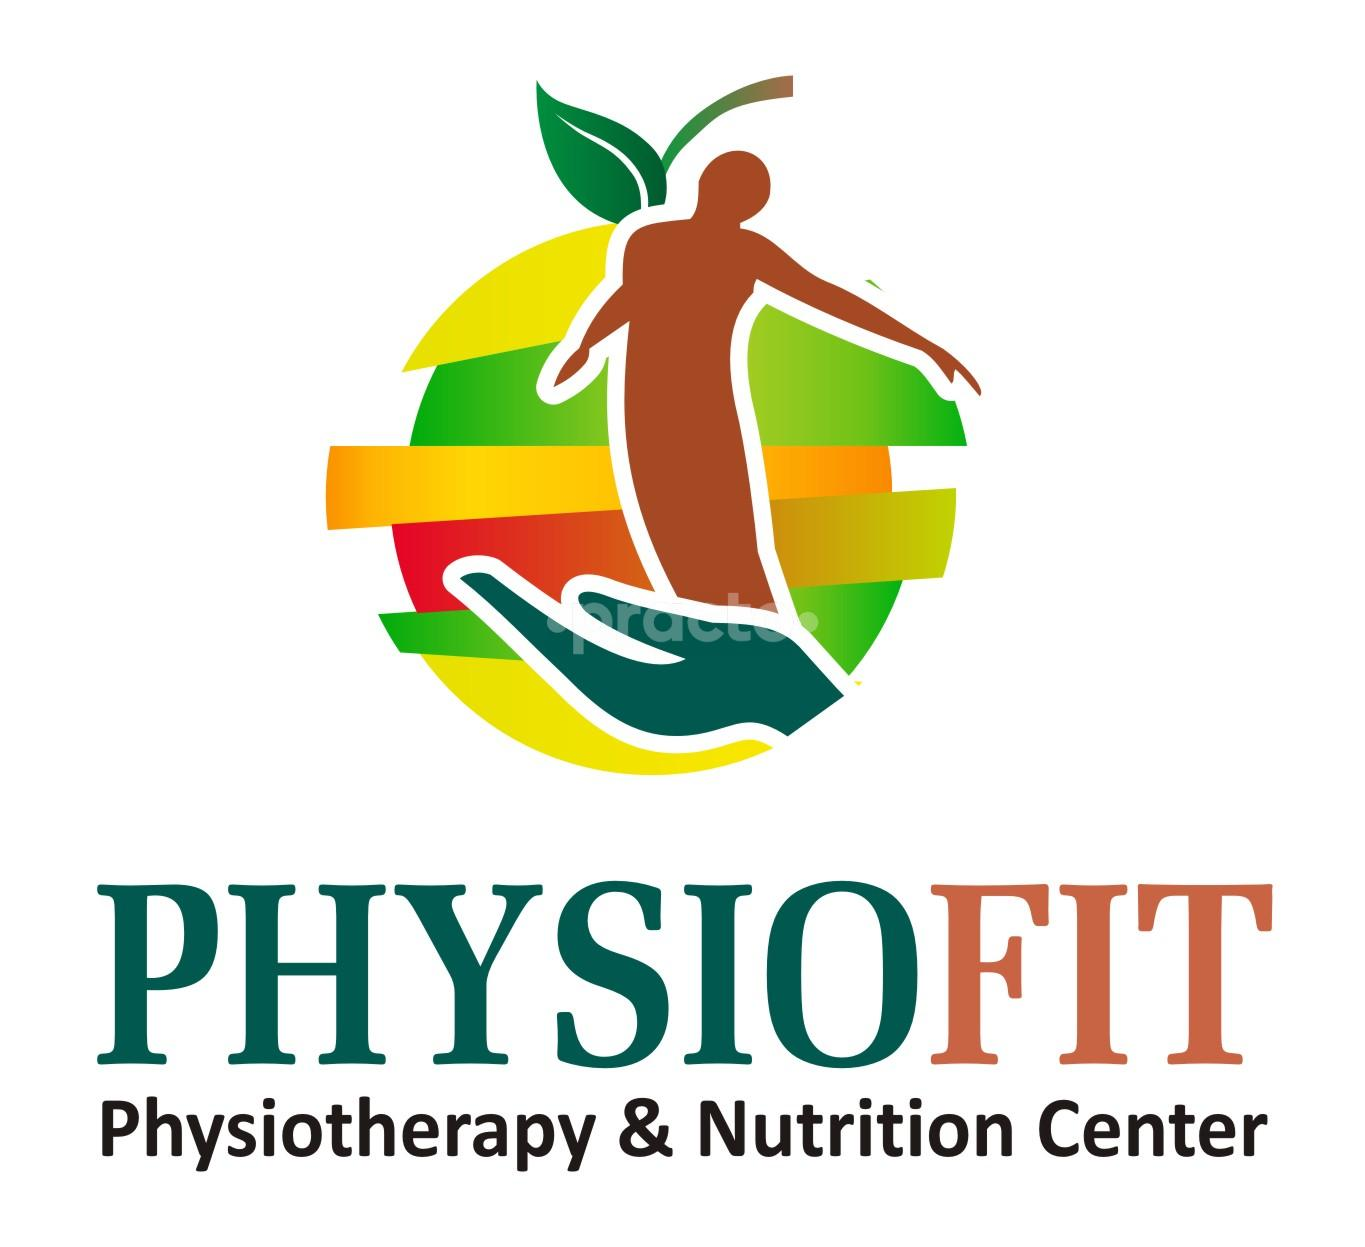 Physiofit Physiotherapy And Nutrition Center